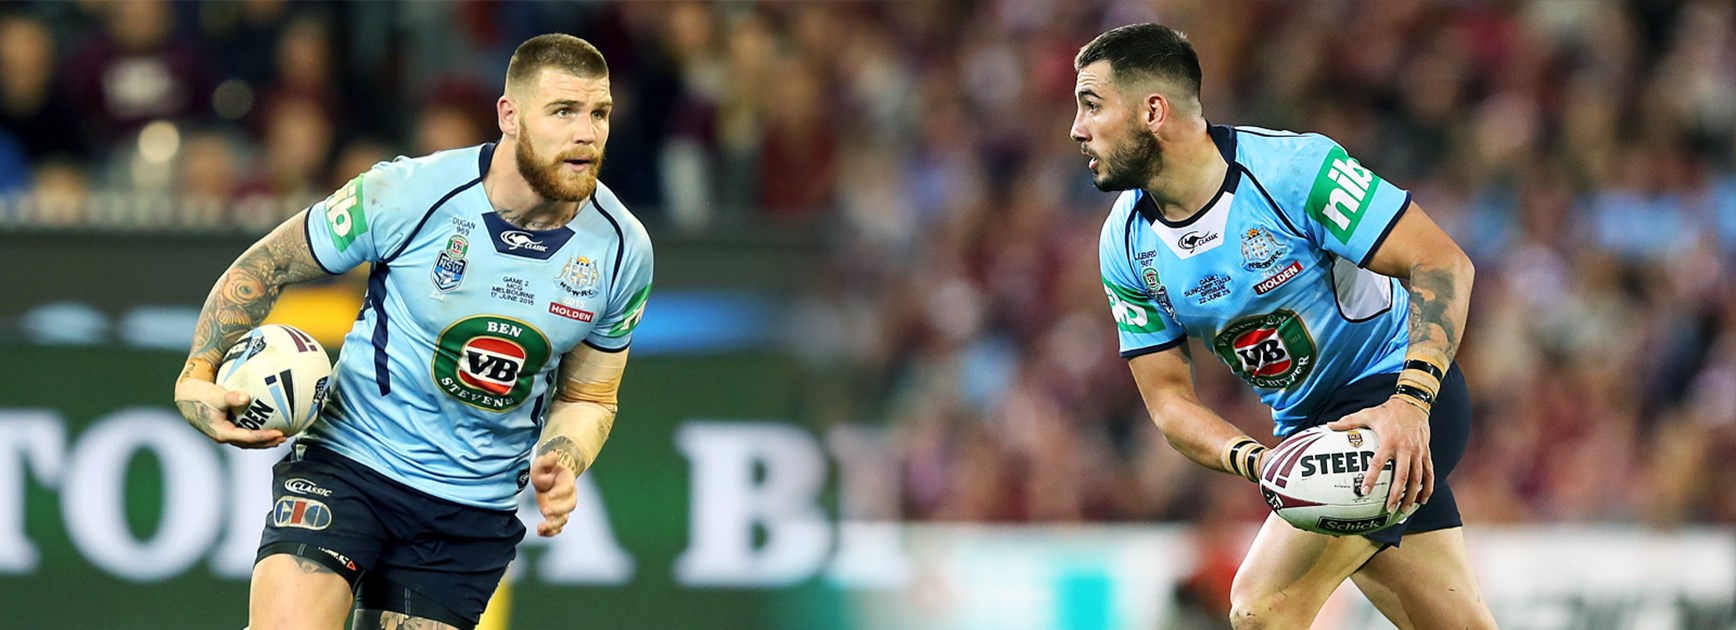 NSW Origin teammates Josh Dugan and Jack Bird.